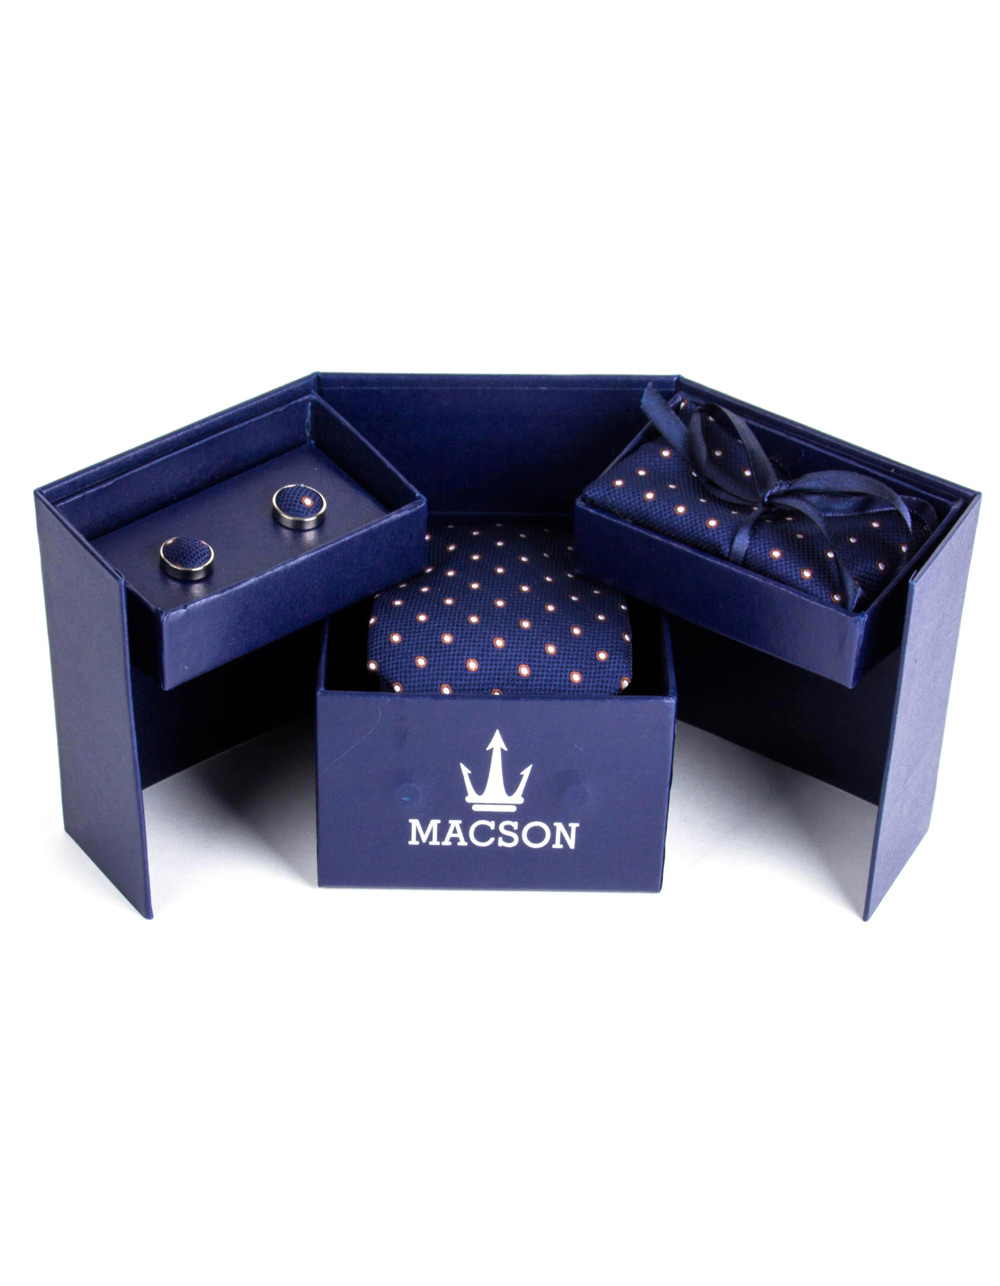 Cufflinks, tie and handkerchief box